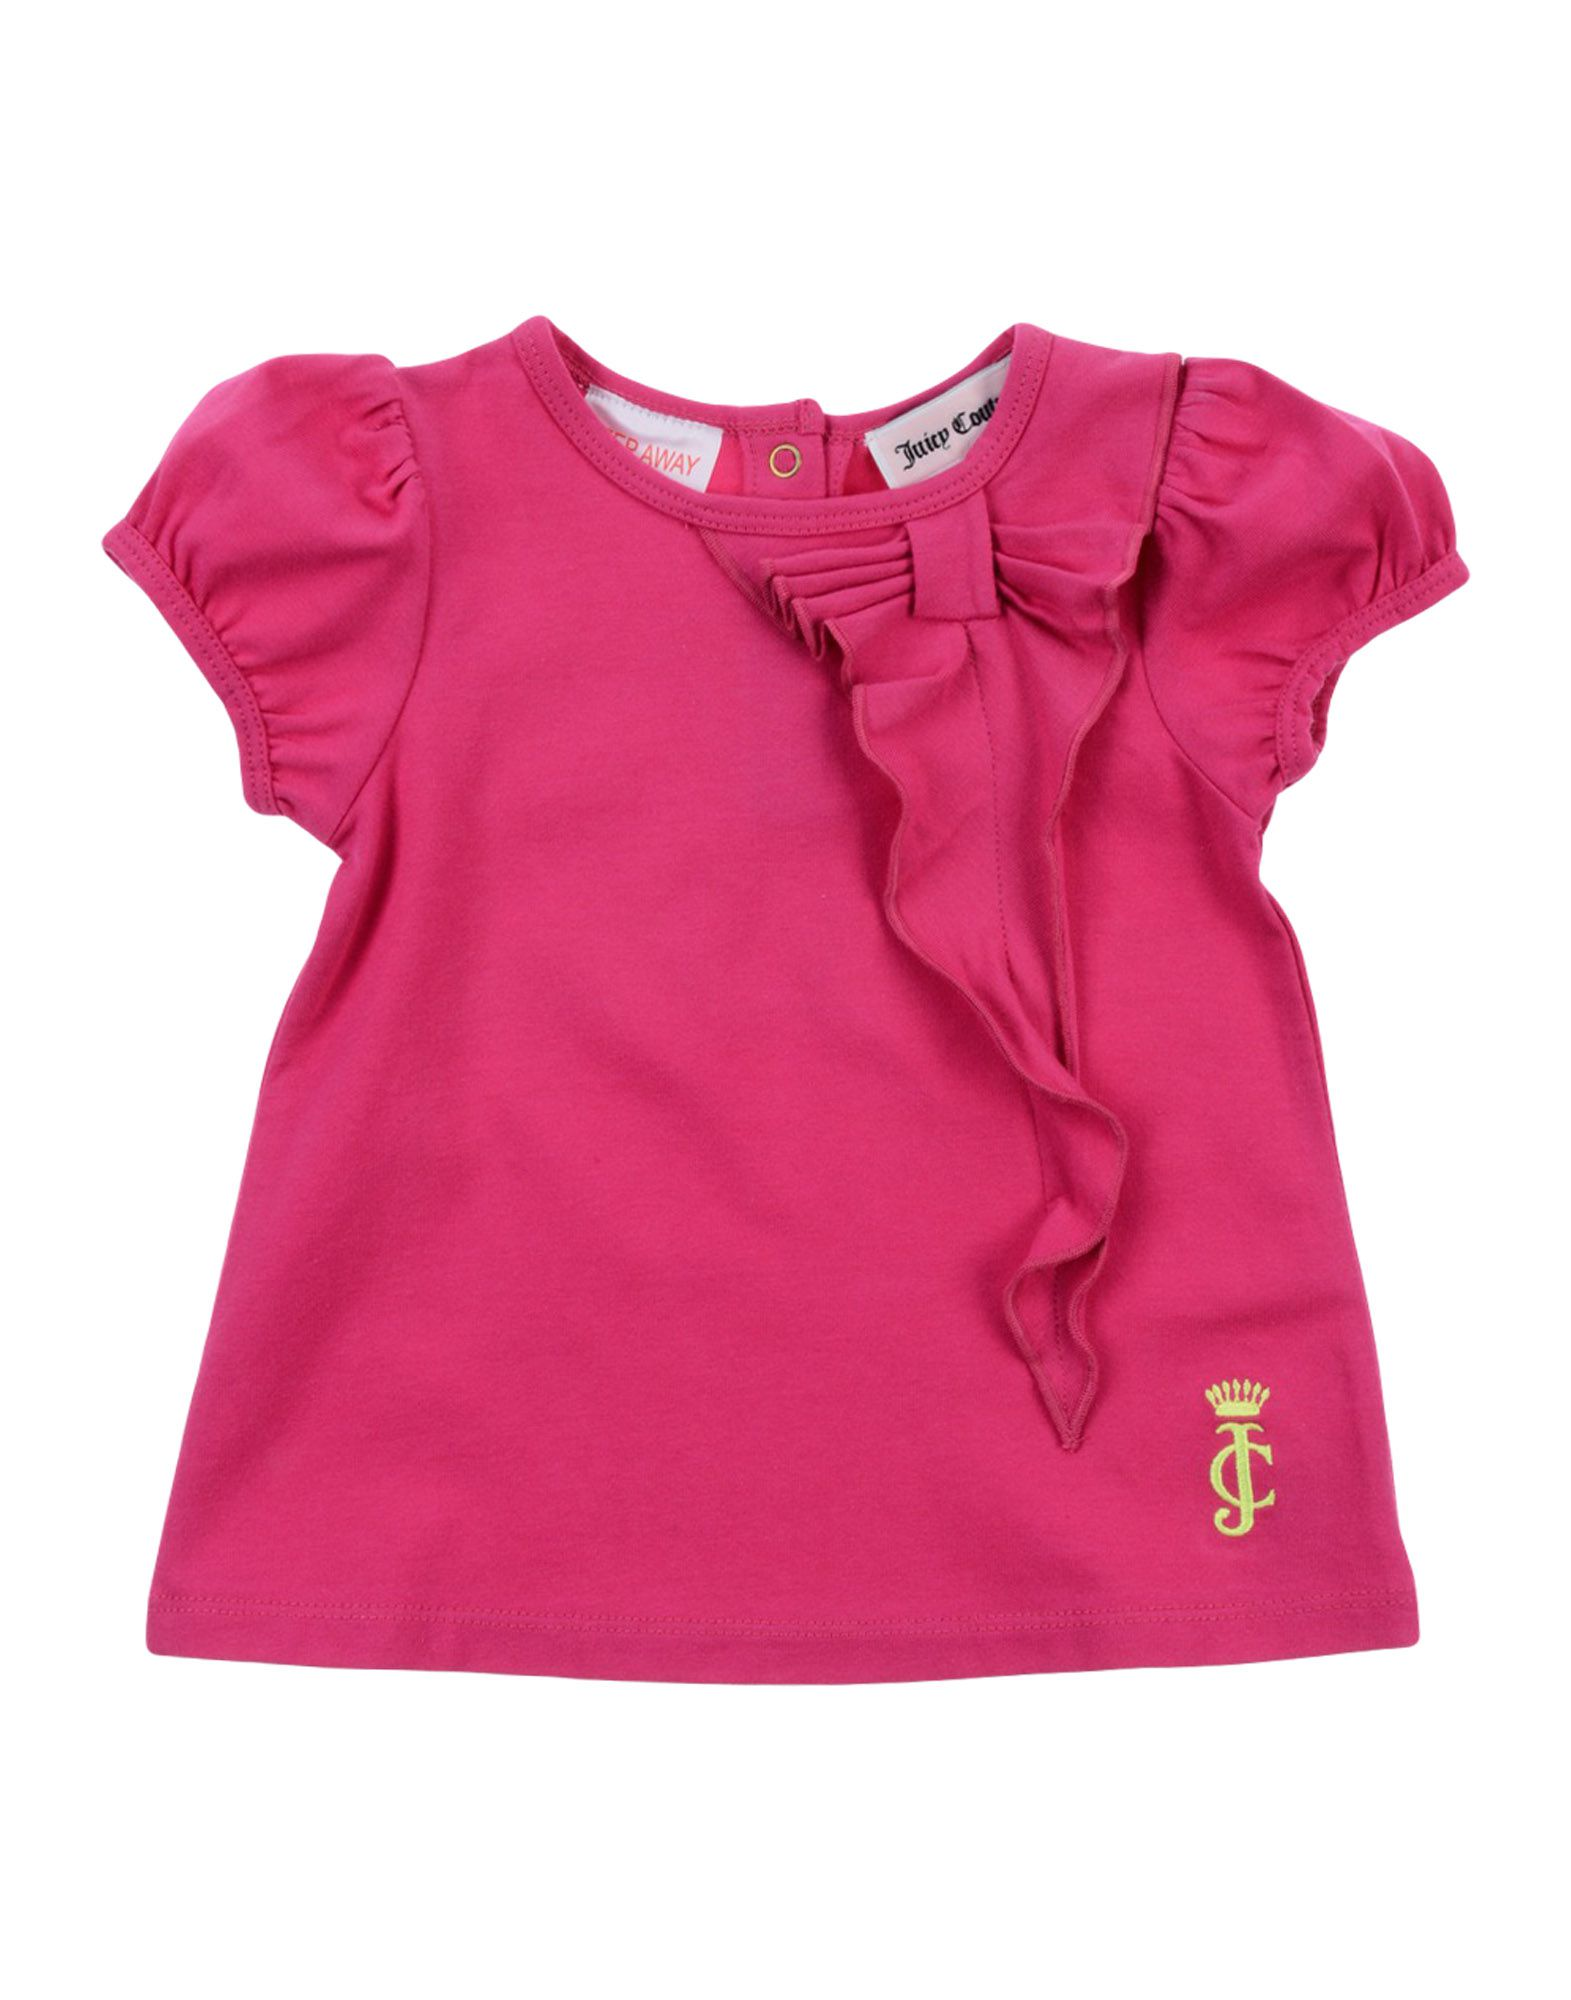 be309f9f189c Juicy Couture T-Shirt Girl 0-24 months online on YOOX Portugal